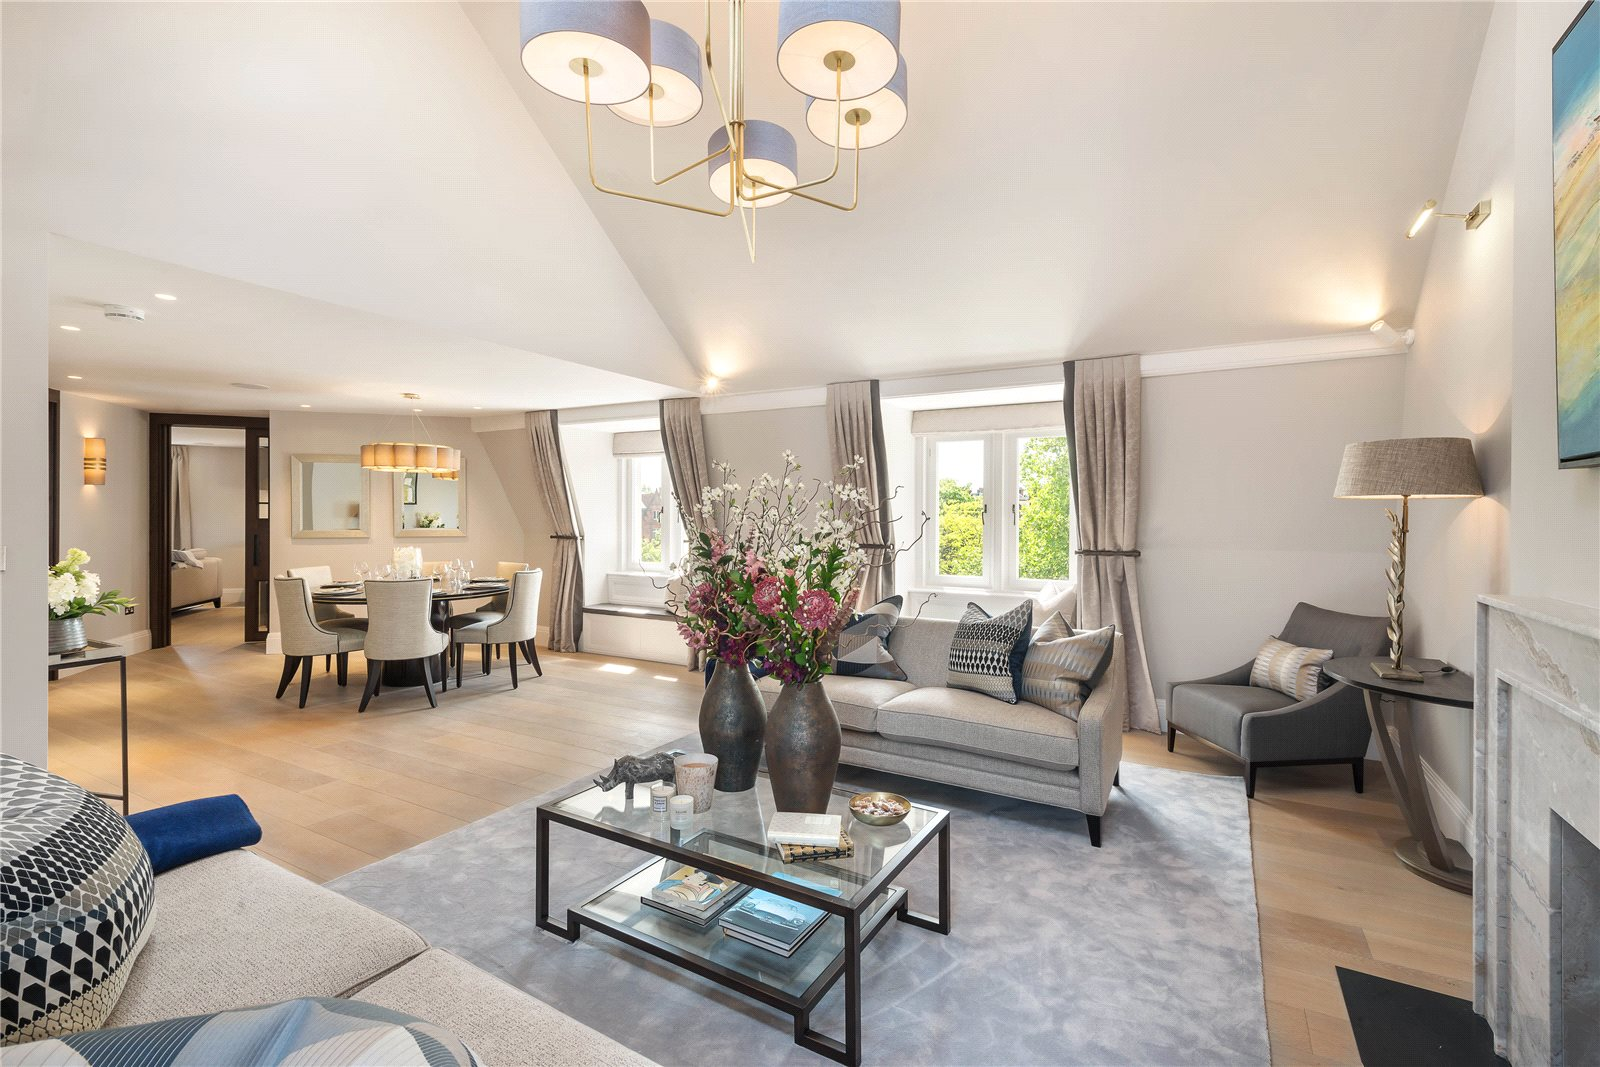 Appartements / Flats pour l Vente à Hans Place, London, SW1X London, Angleterre